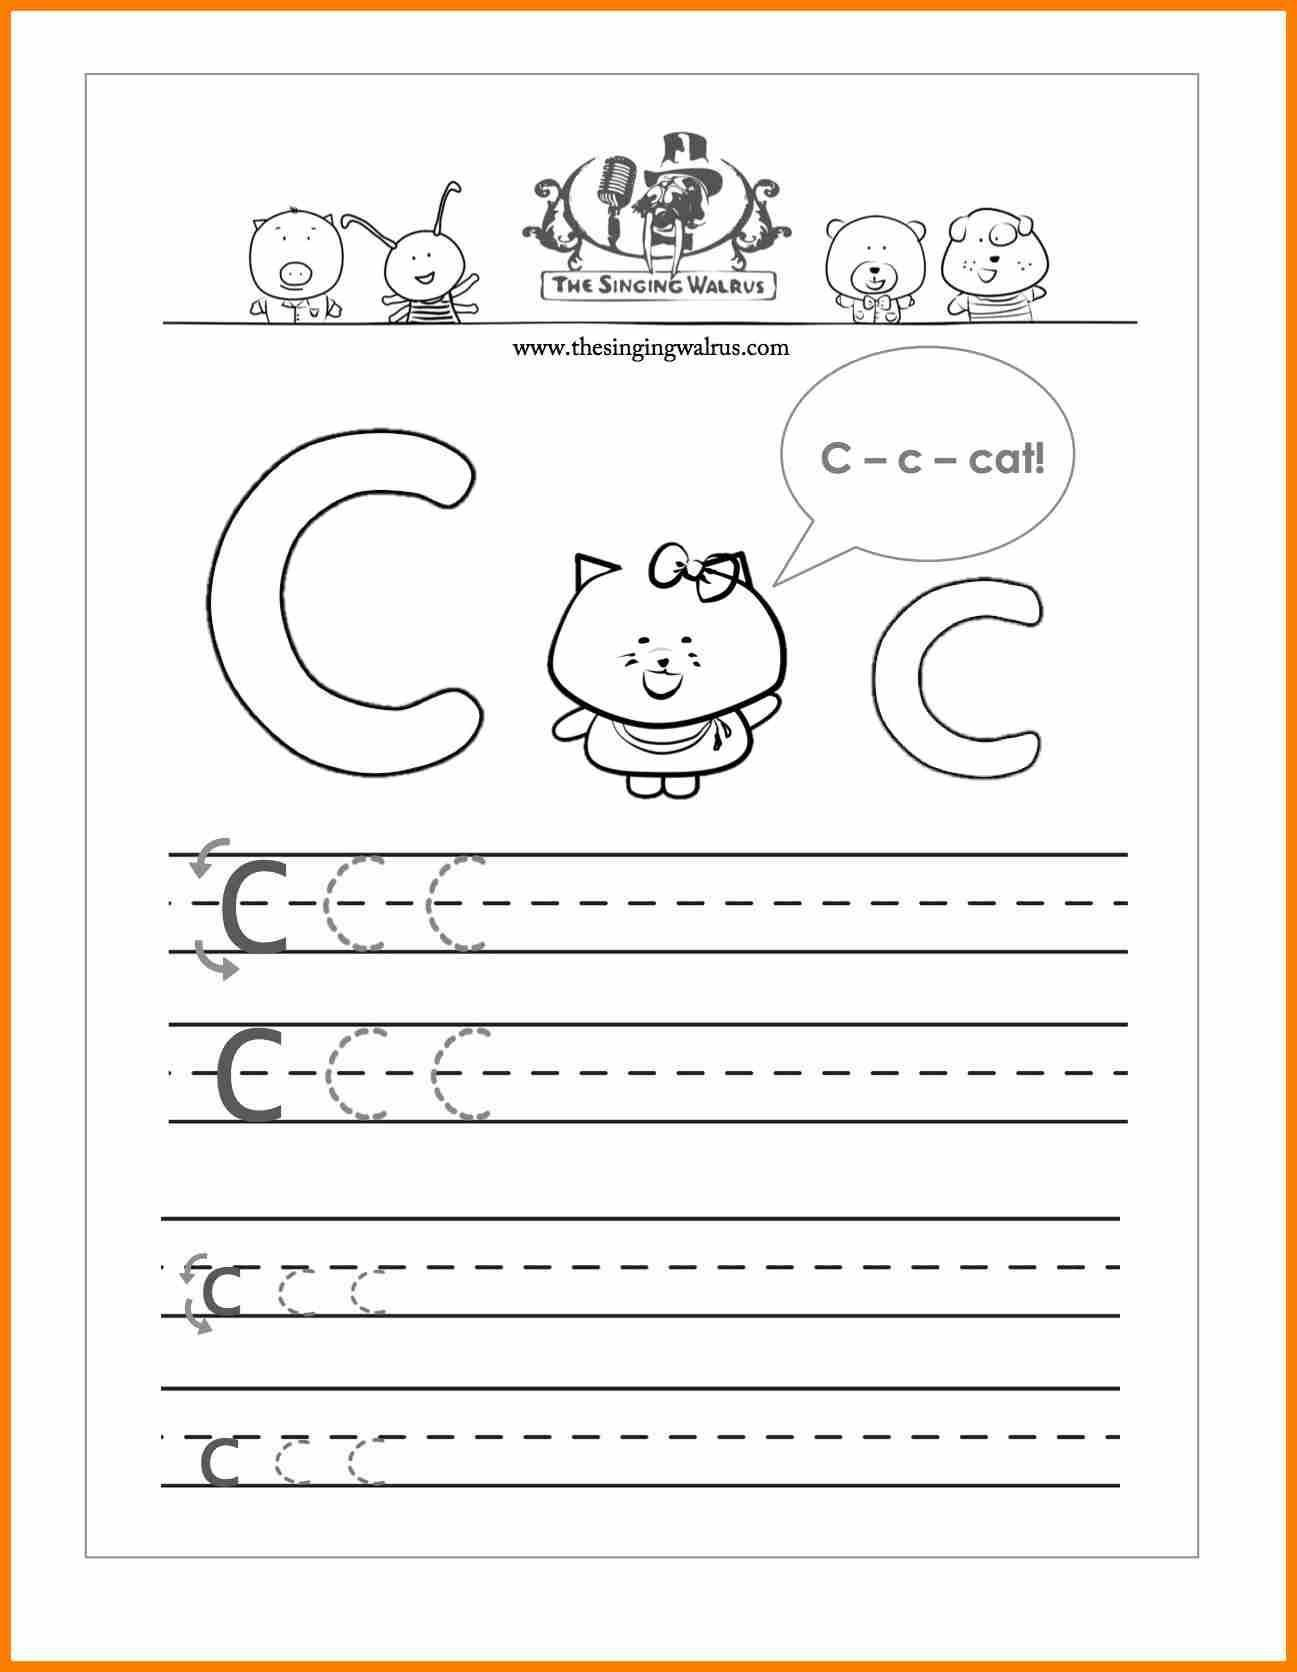 10 Practise Writing Letters In 2020 Free Handwriting Worksheets Letter Worksheets Letter C Worksheets